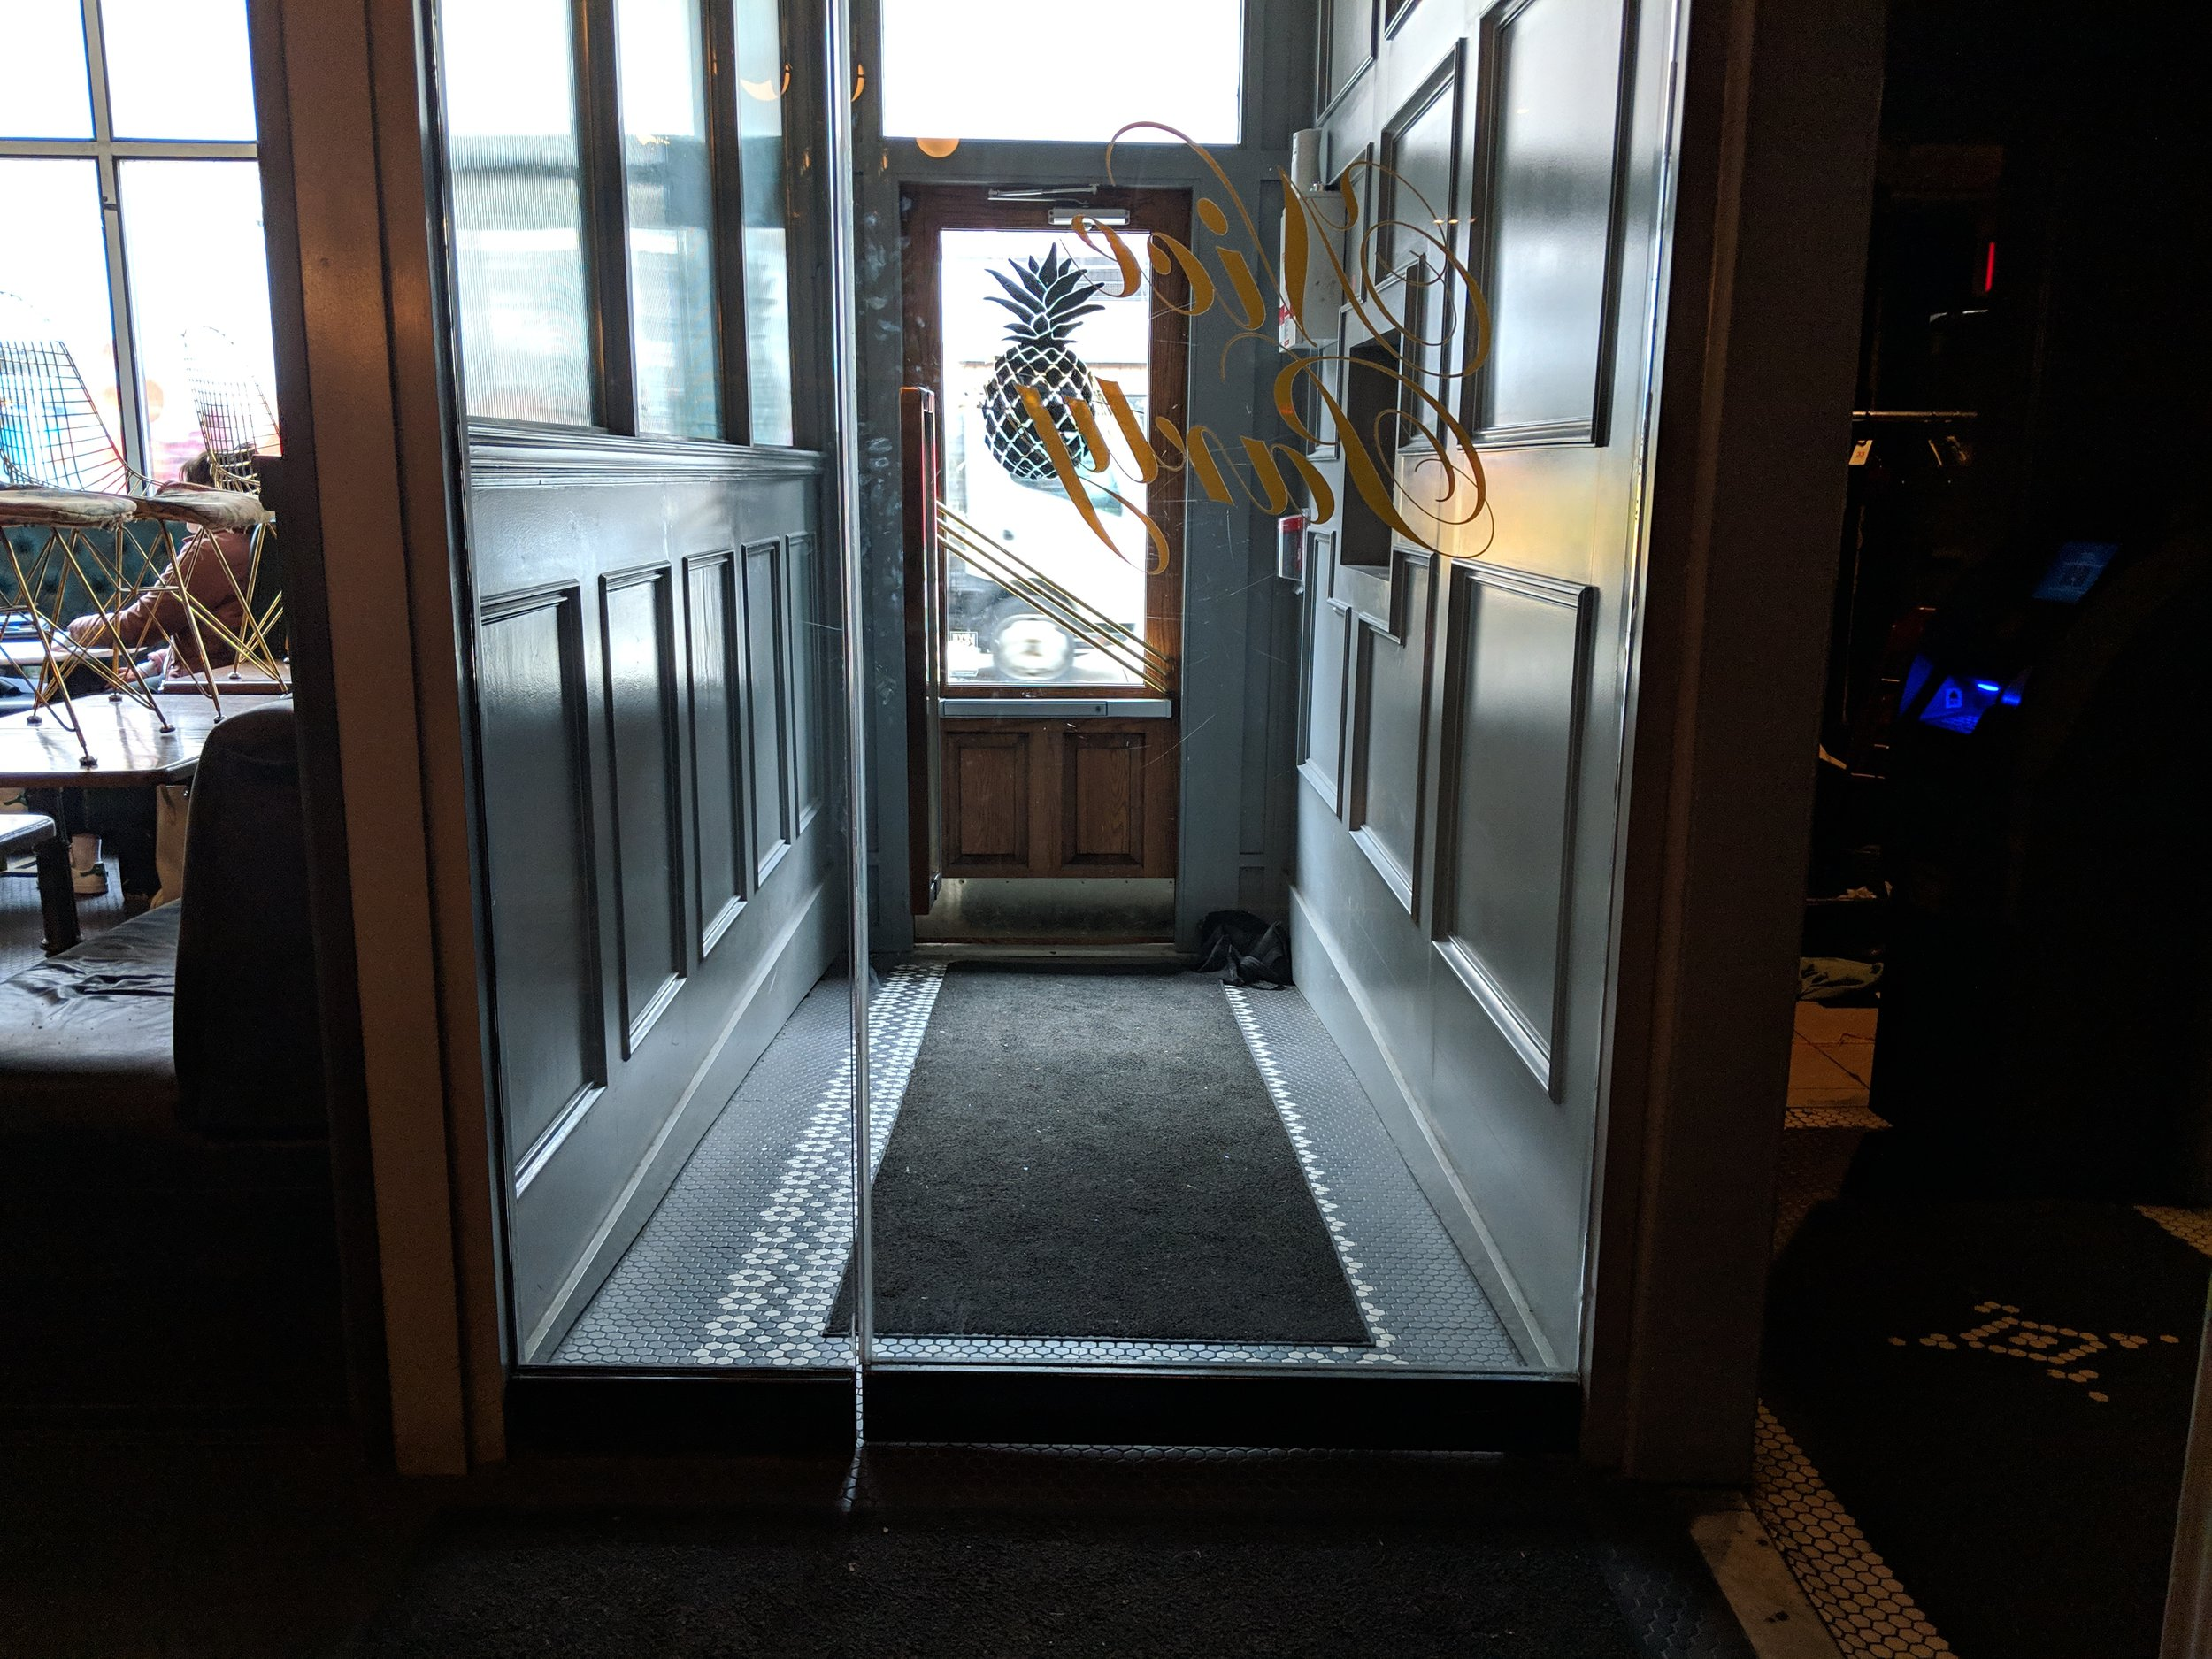 Picture of the second accessible door at Miss Thing's